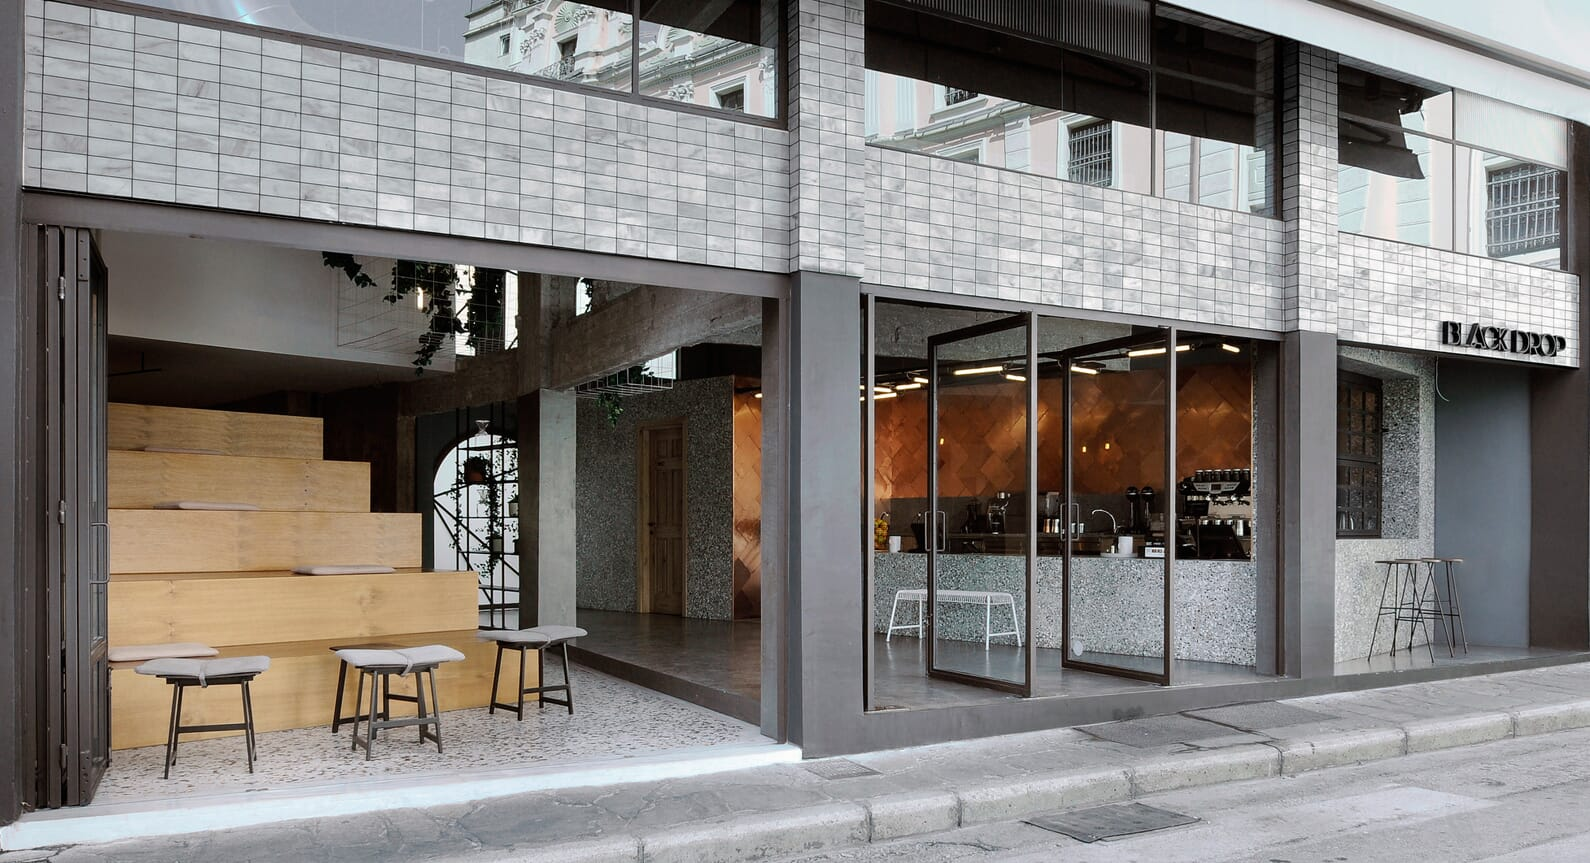 One Of The Best New Coffee Spots In The World: Black Drop Coffee Shop